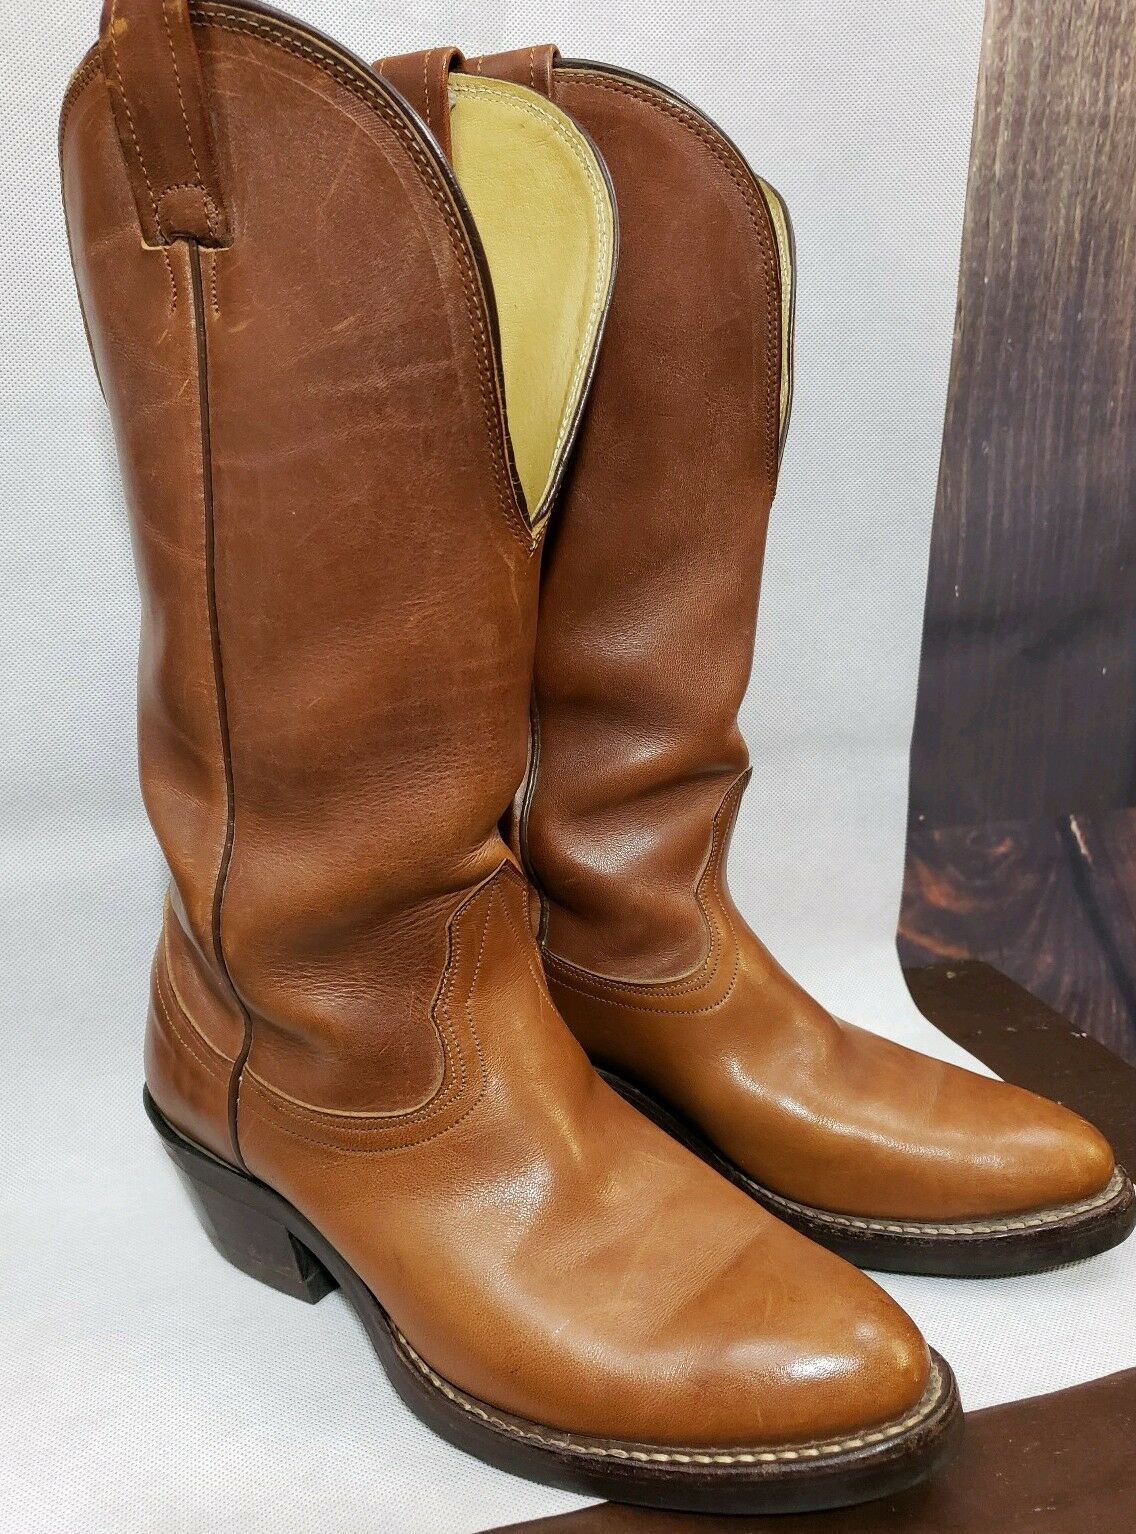 Nocona 3417C Men's Sz 6 D Brown Tall Western Cowboy Boots A-2